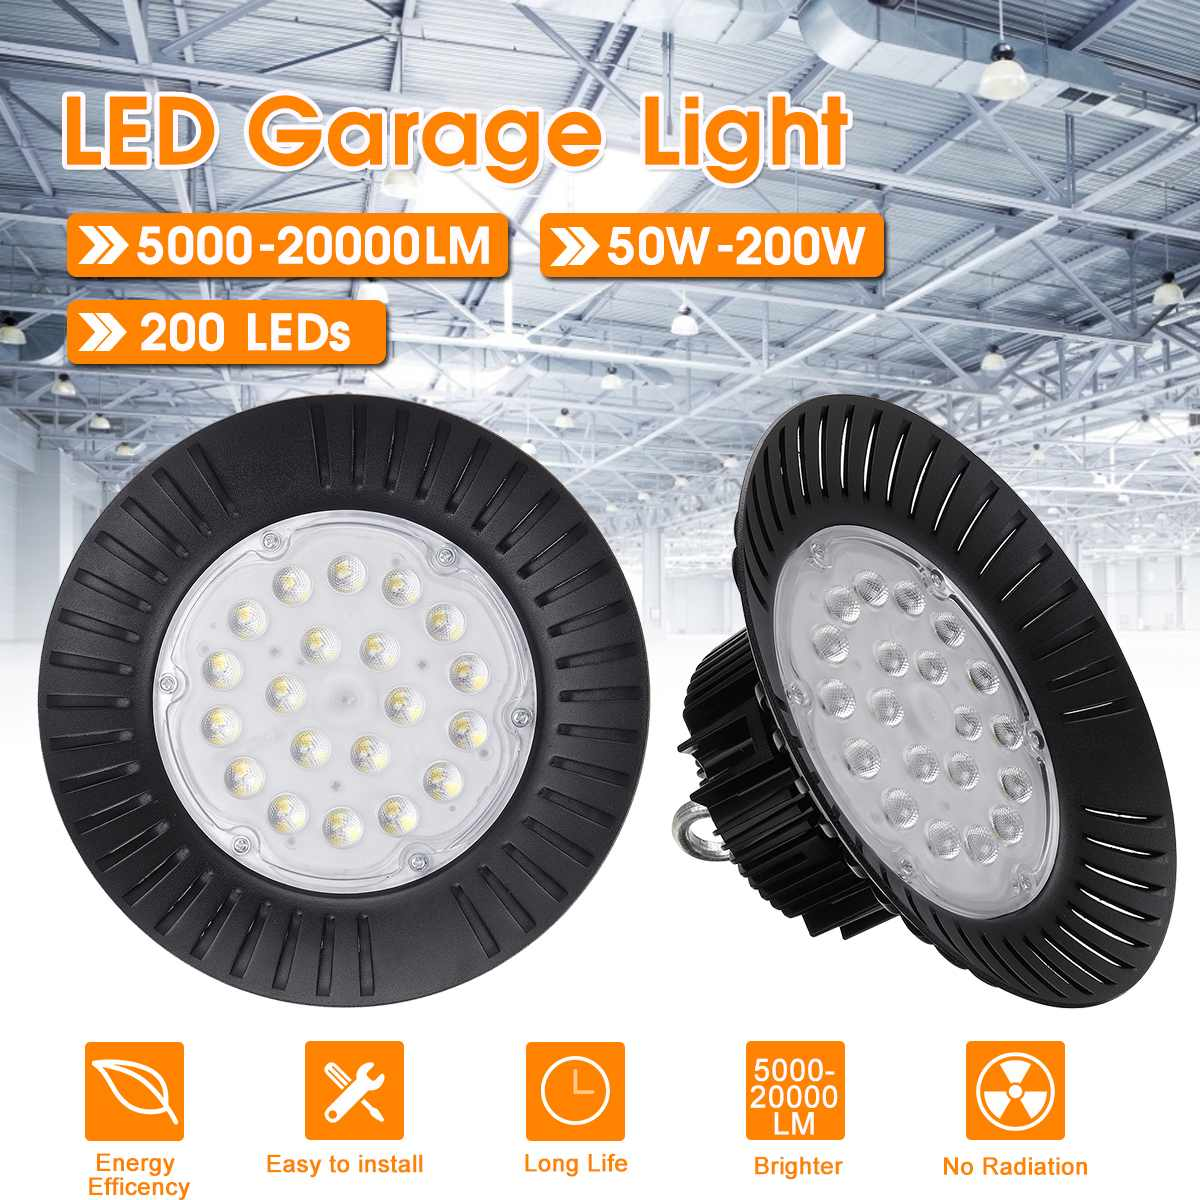 200W Super Bright IP65 Waterproof Garage Lamp 5-20KLM Industrial Lighting LED High Bay Light For Warehouses Football Field